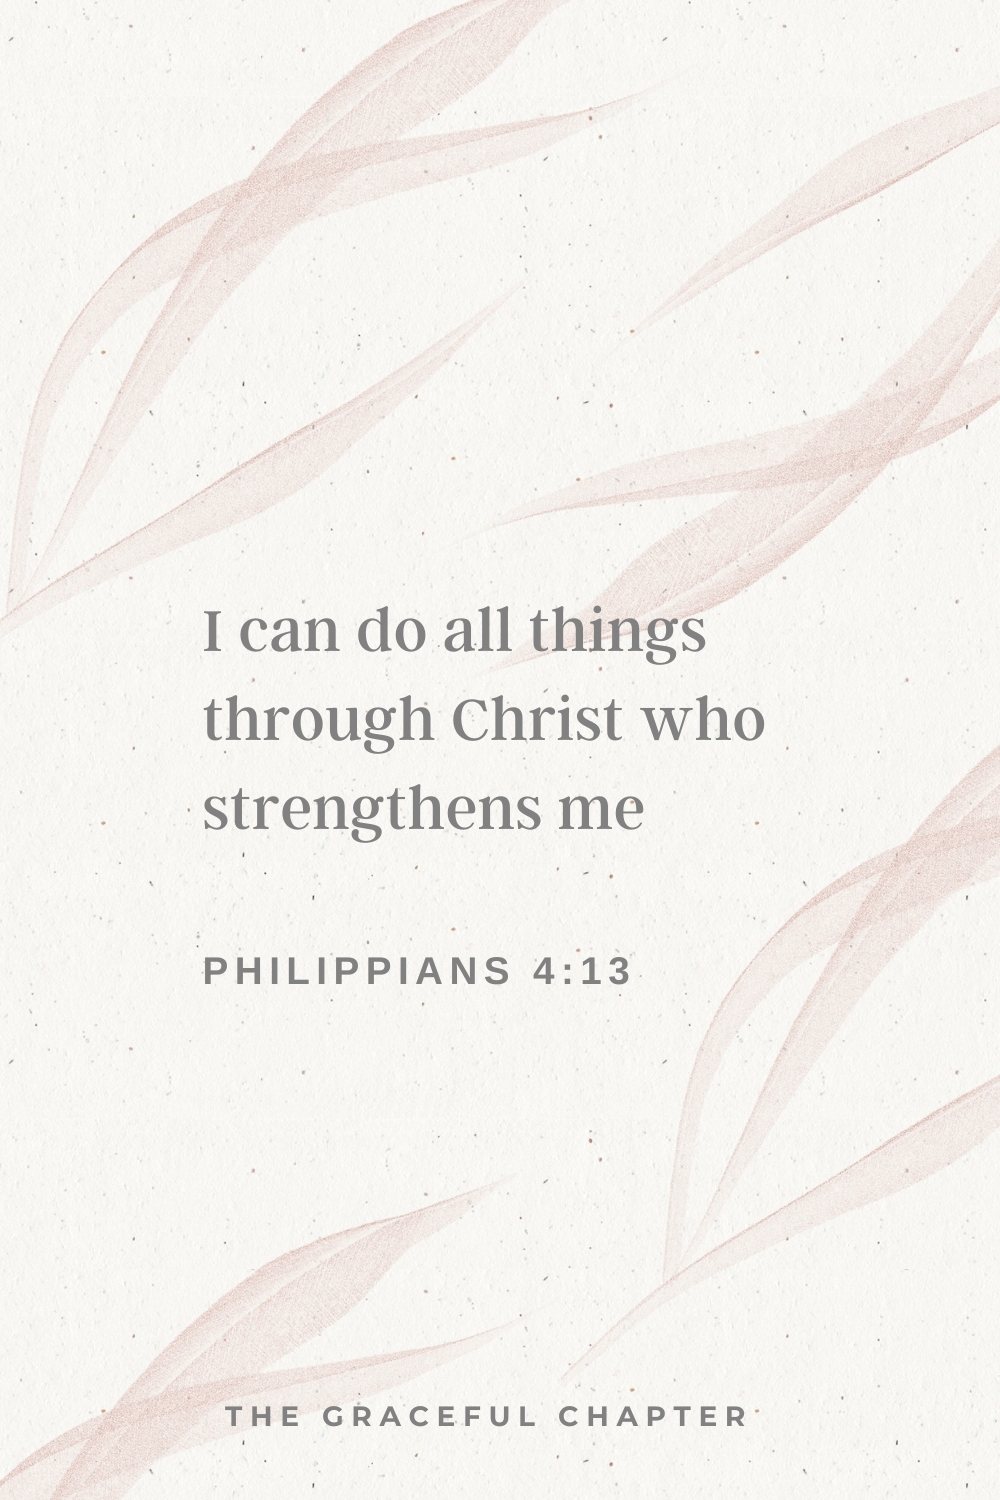 I can do all things through Christ who strengthens me  Philippians 4:13.